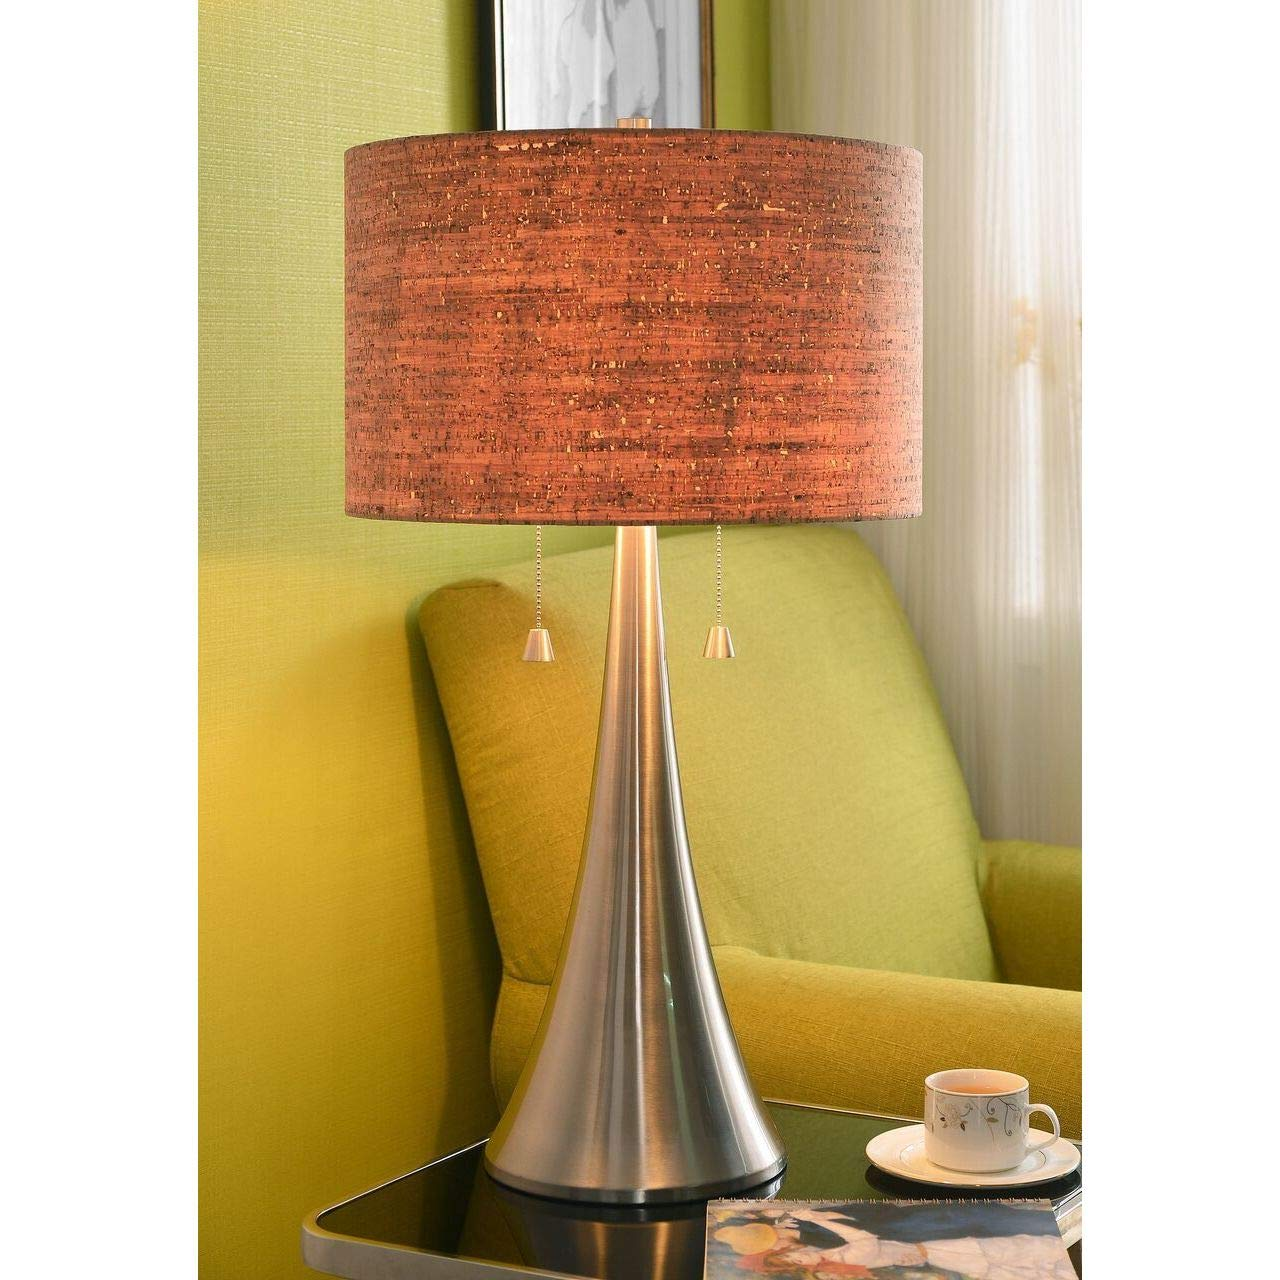 Brown Cork Table Lamp Stainless Steel Desk Light Natural Modern Shade Home Decor Lighting Metal